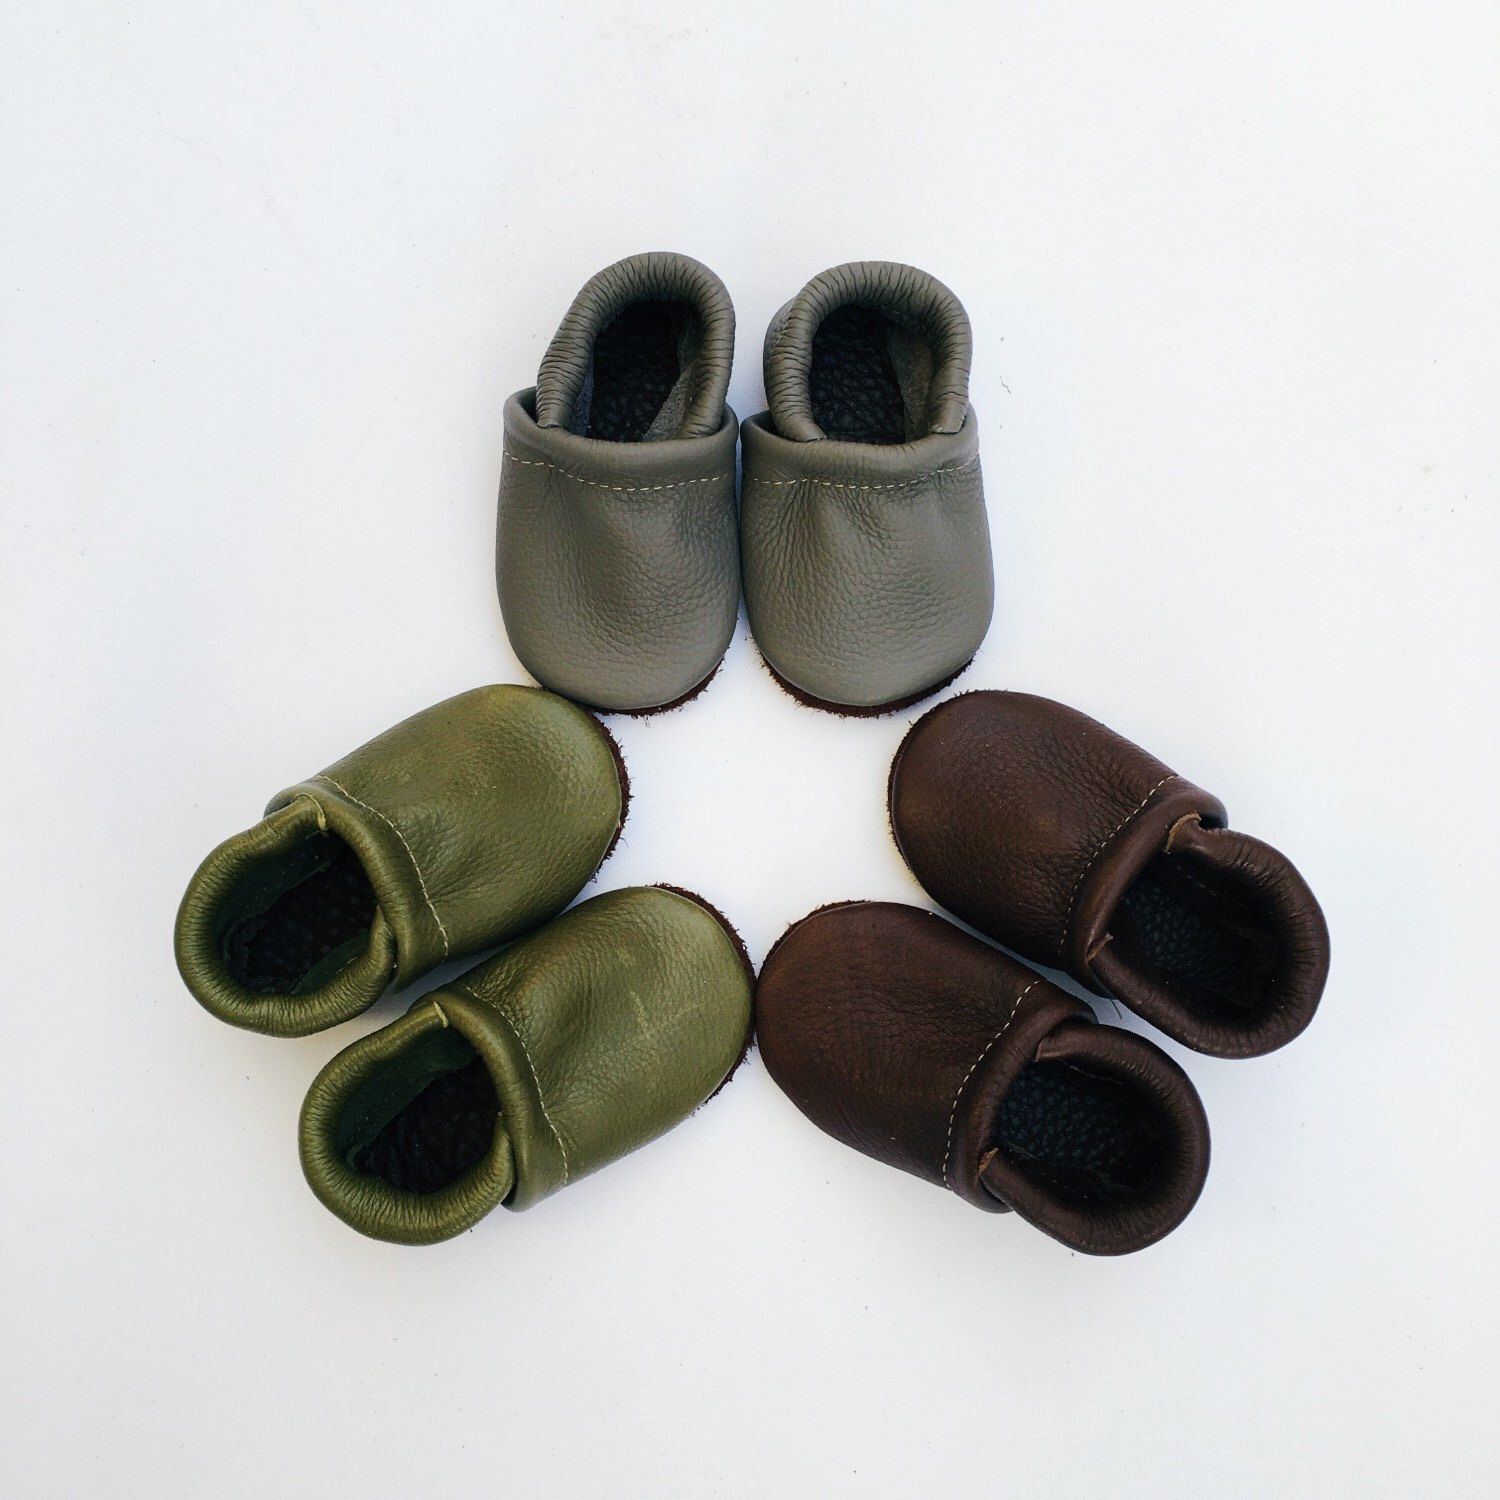 BASIC//LOAFERS ( pick color)Olive, Gray, Chocolate Brown Soft Soled Leather Shoes Baby and Toddler by starryknightdesign on Etsy https://www.etsy.com/listing/219449200/basicloafers-pick-colorolive-gray